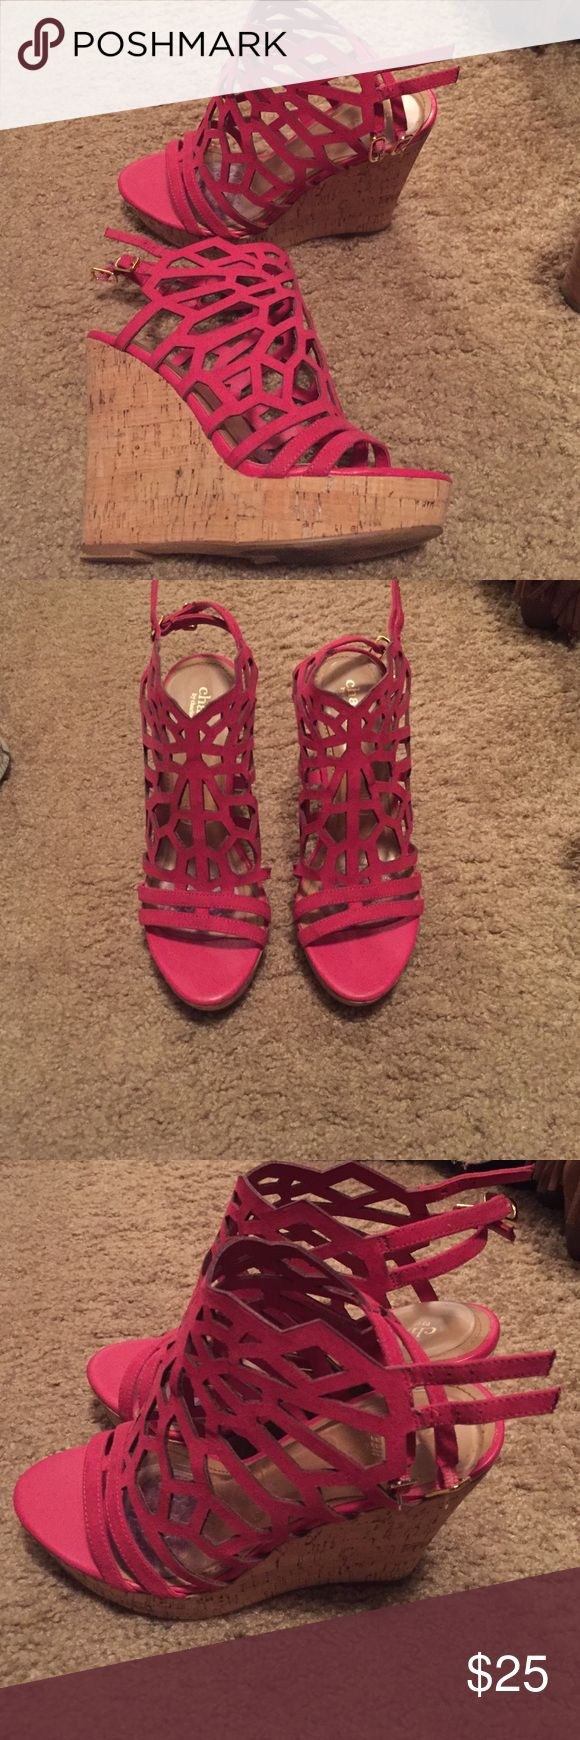 Hot pink wedges Hot pink wedges, only worn once Shoes Wedges